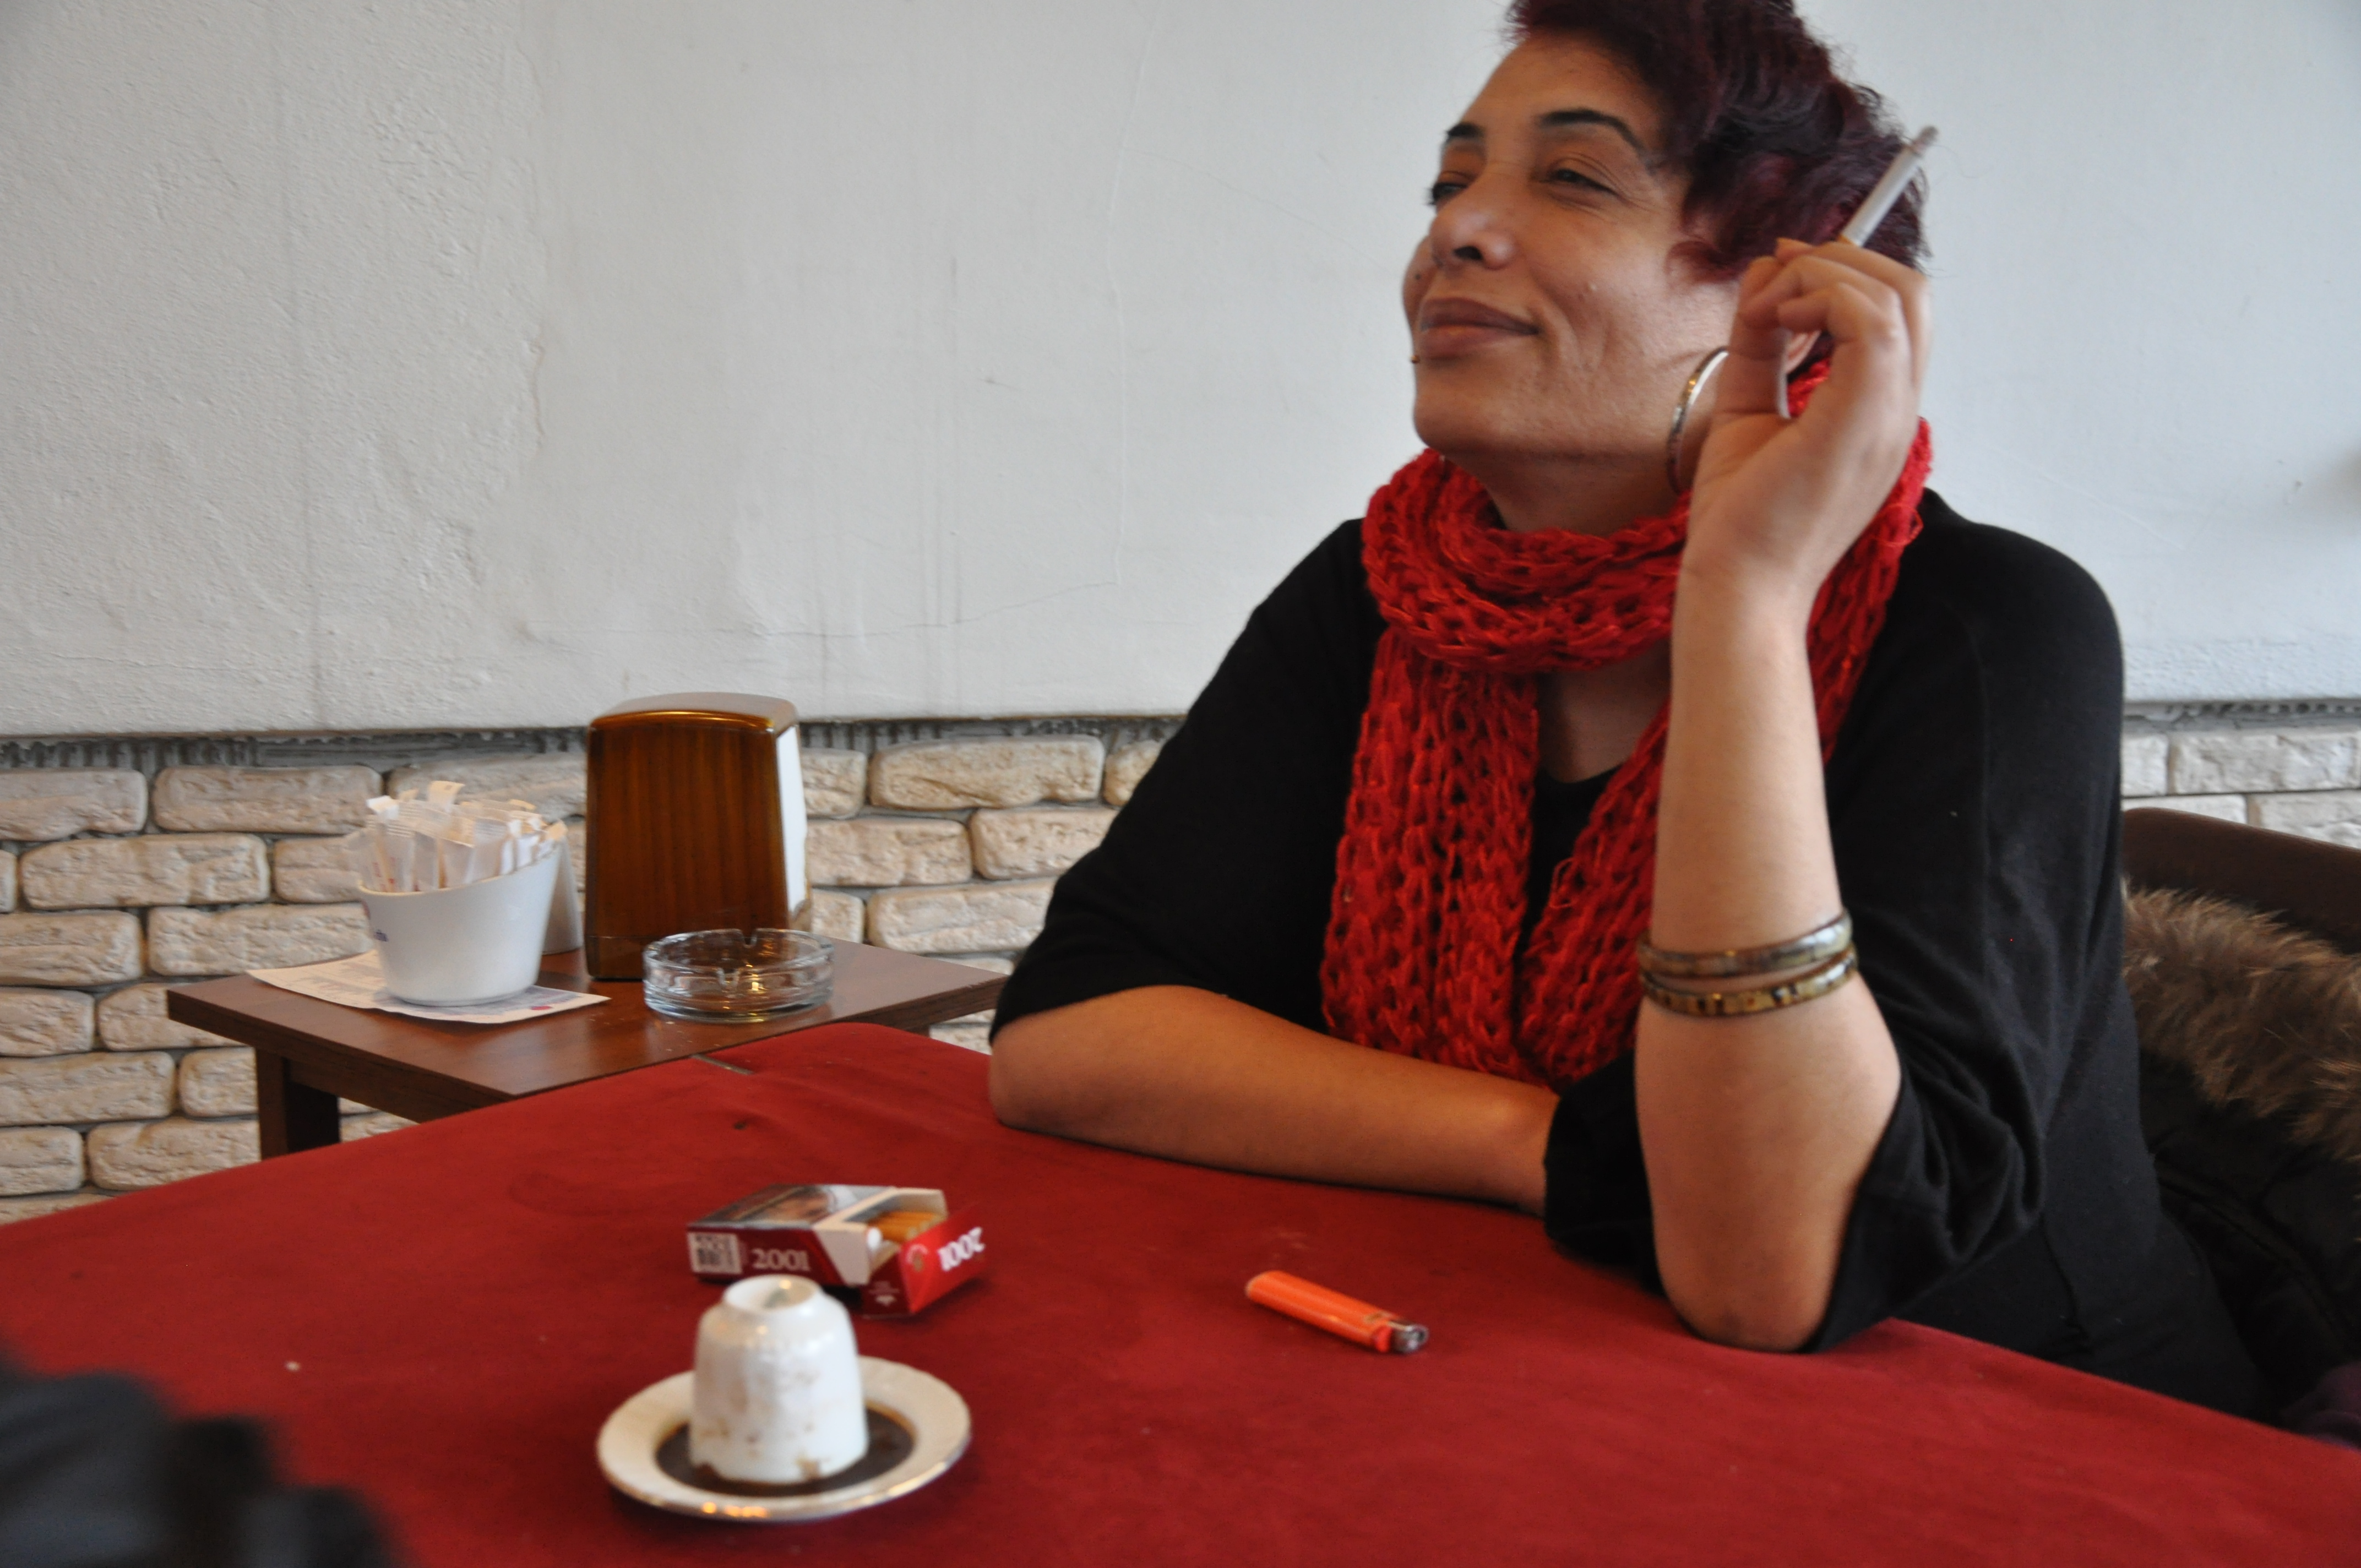 """Esmeray, a 45-year-old Turkish actress and activist, underwent gender reassignment surgery one and a half years ago. But she realized she was """"in the wrong body"""" long ago, when she was a 9-year-old boy growing up in Turkey's conservative, """"macho"""" Northeast. She says she was subjected to emotional violence her whole life. Bohn/GroundTruth"""